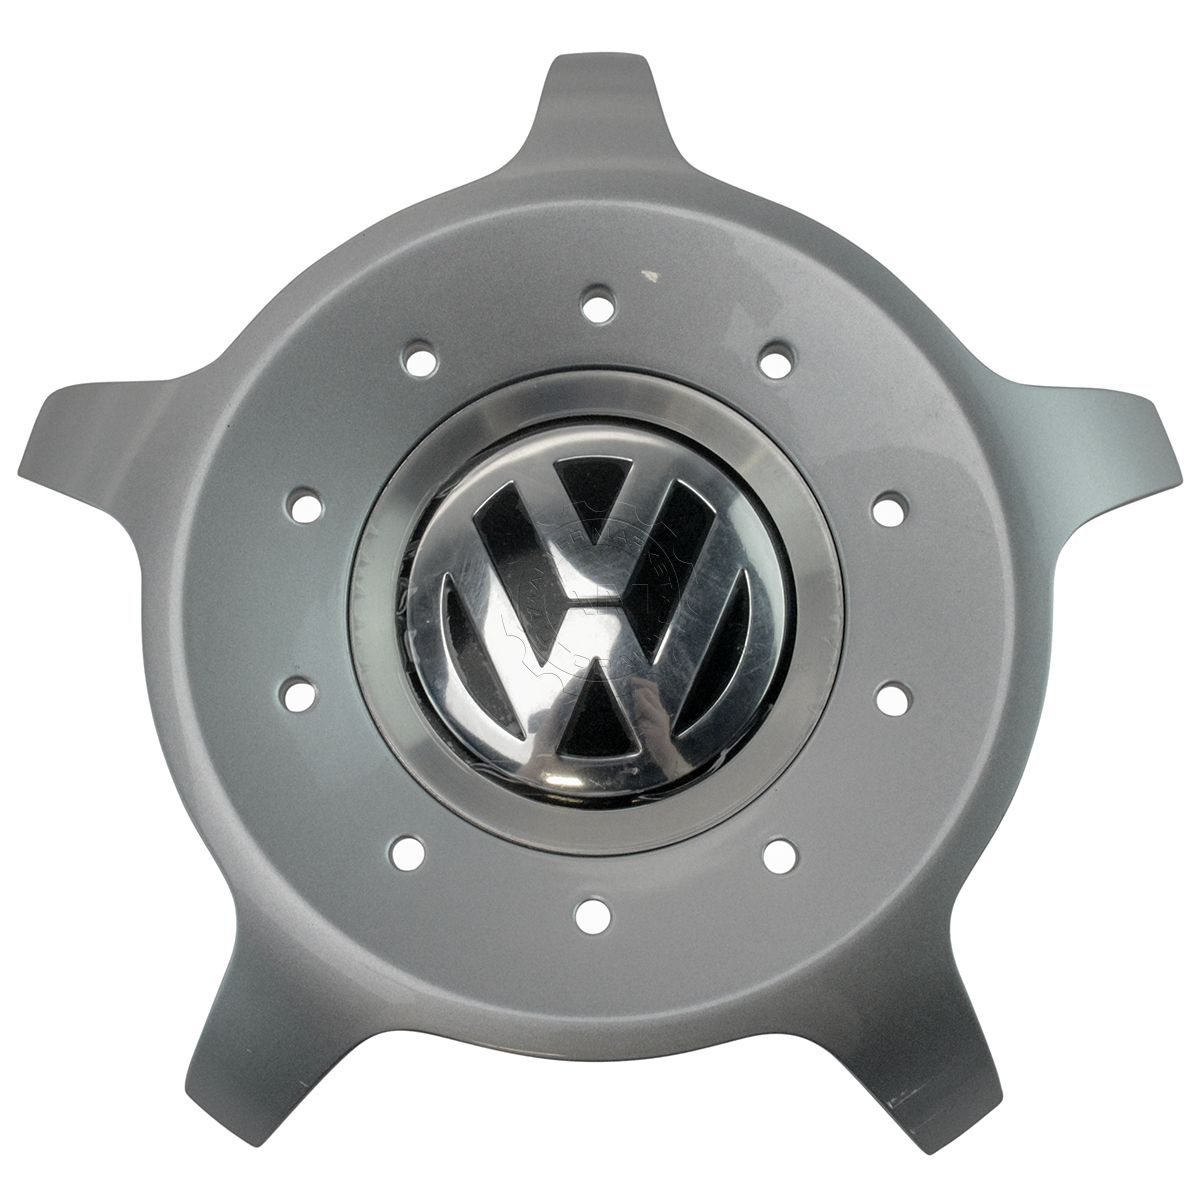 Oem 1c0601149nmbl Wheel Hub Center Cap For Vw Beetle Alloy Seattle